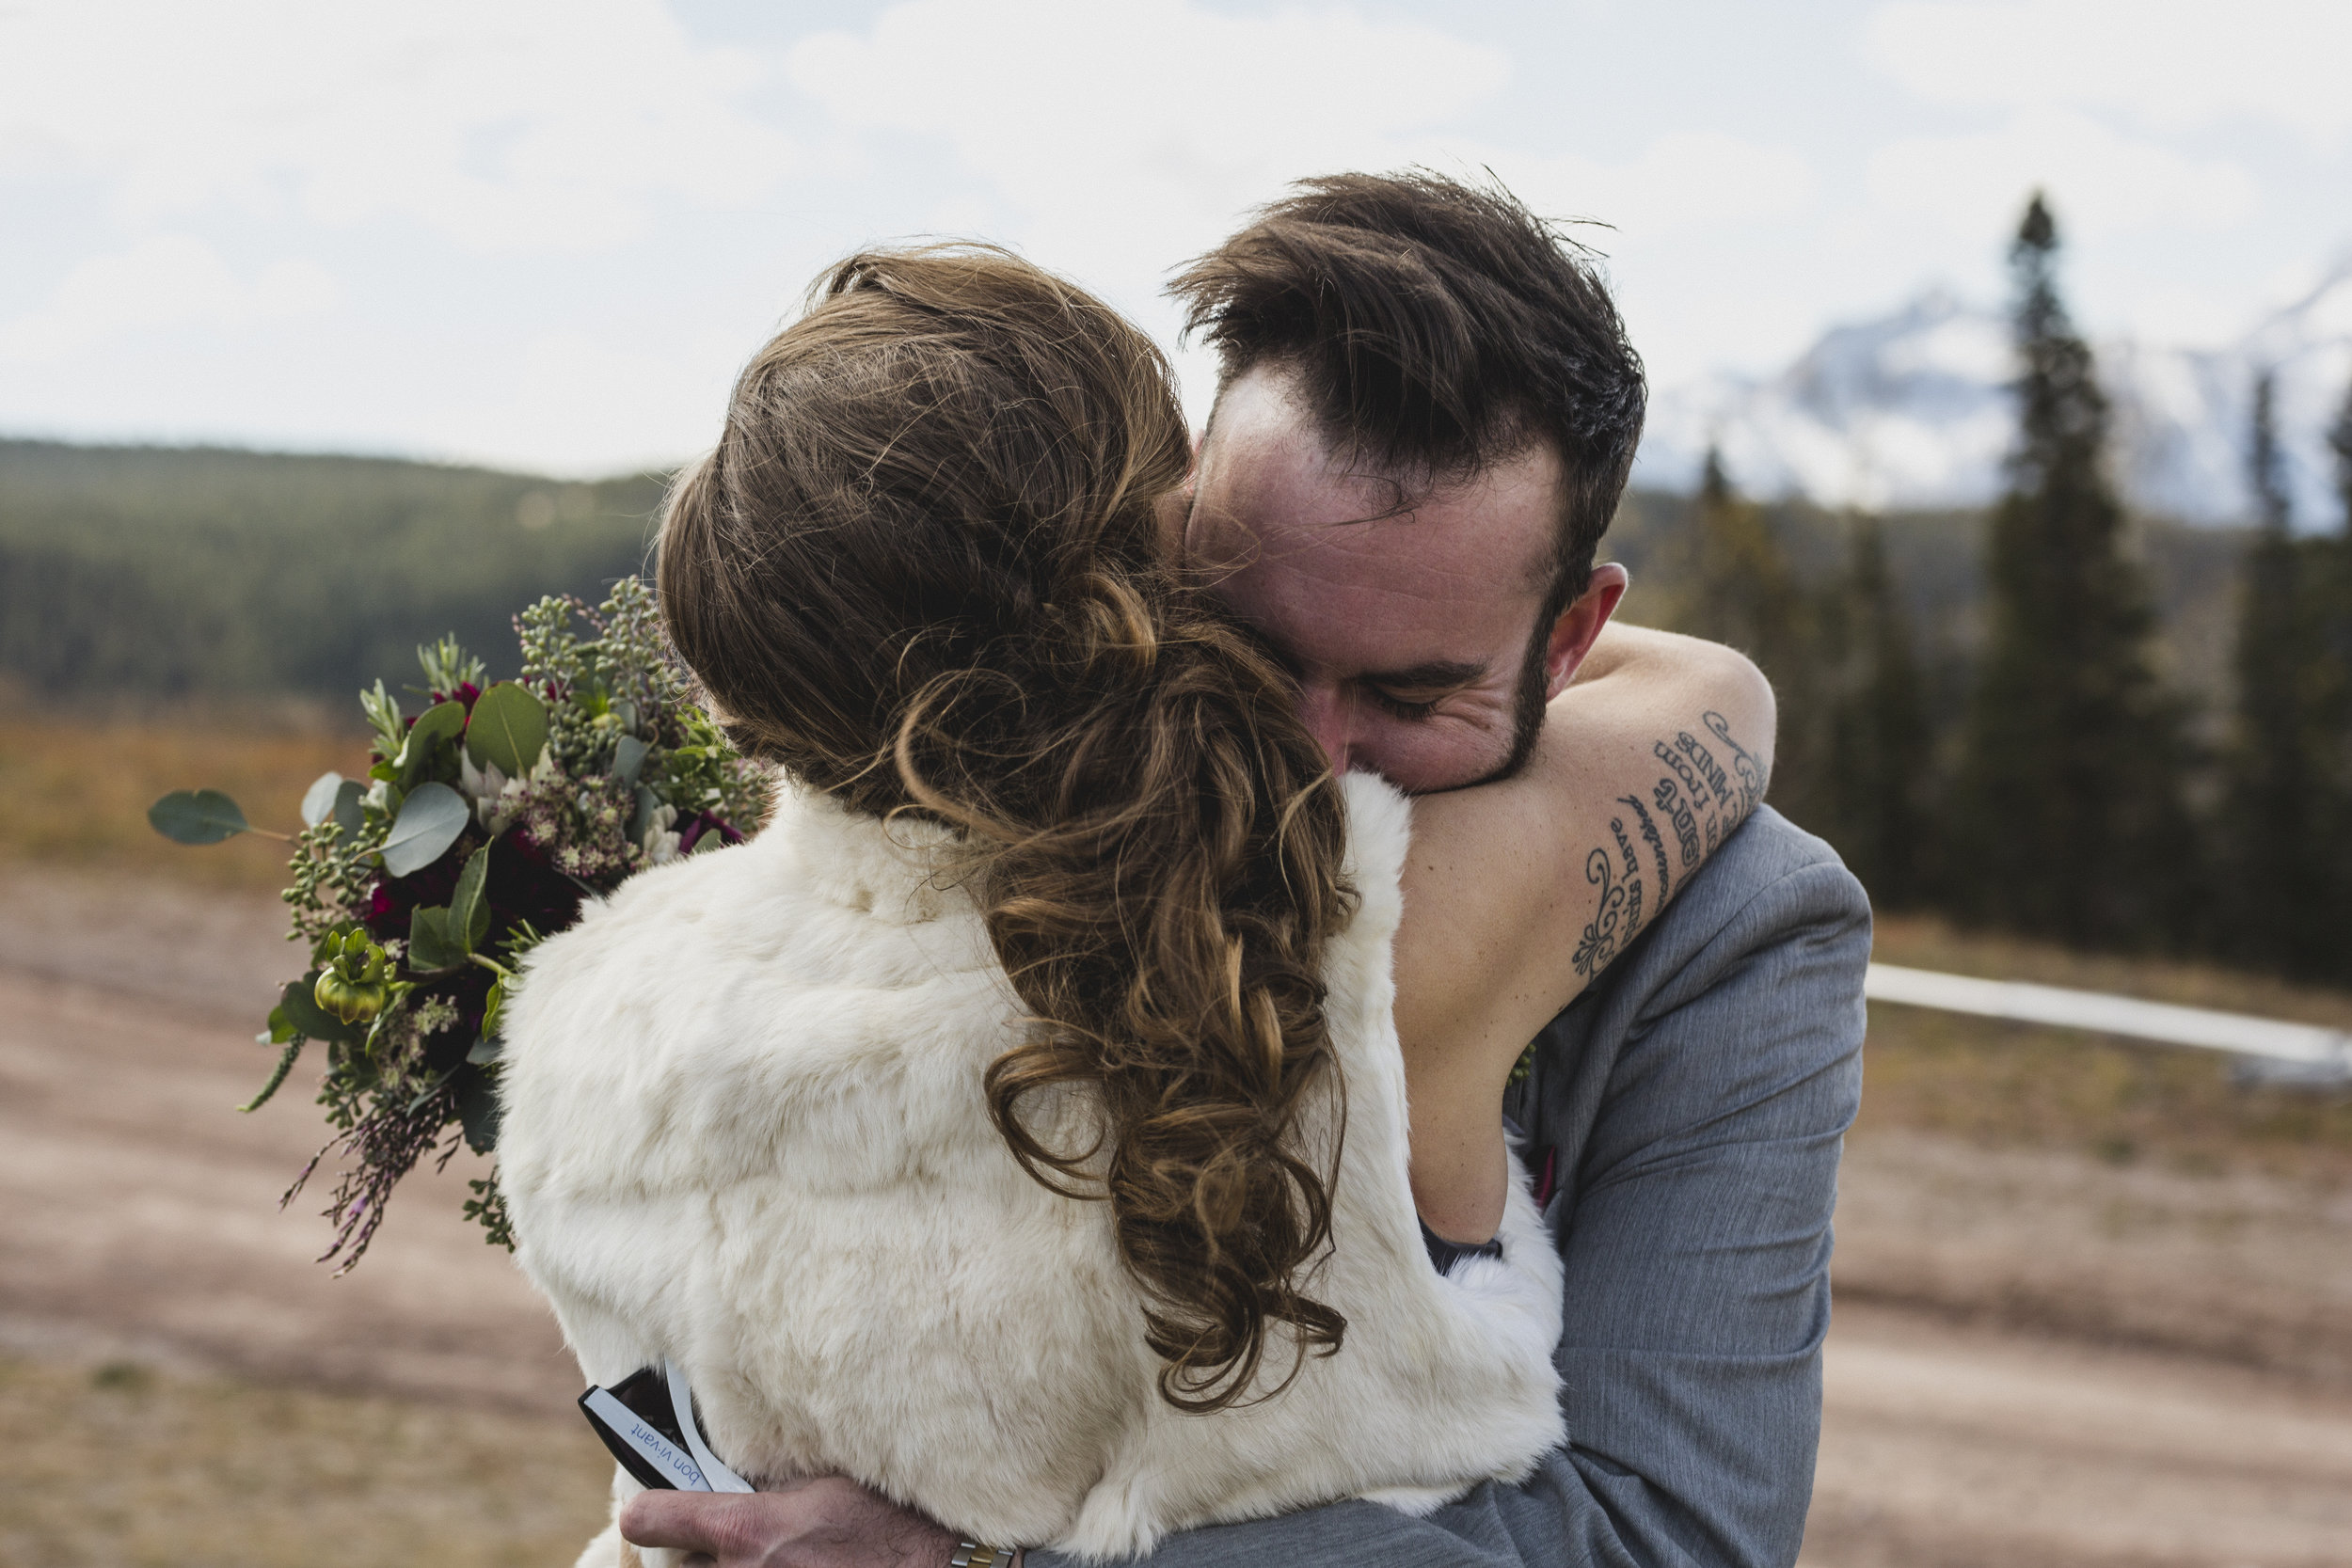 NE-LeahandAshtonphotography-Telluride-Wedding-Photography-9456.jpg